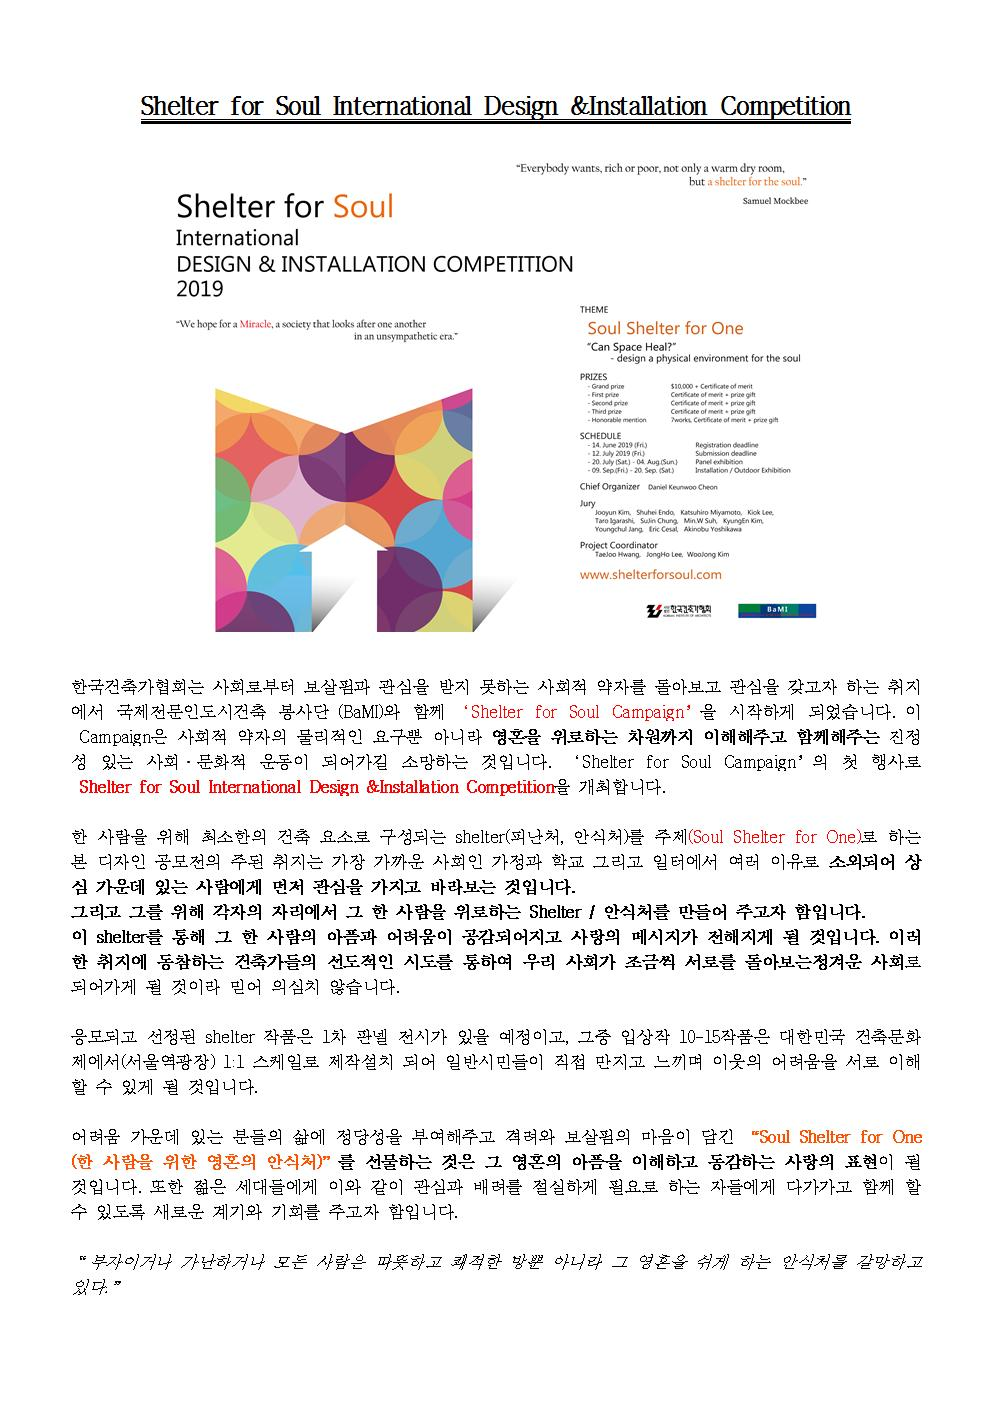 Brief_Shelter for Soul International Design_kor_20190521001.jpg